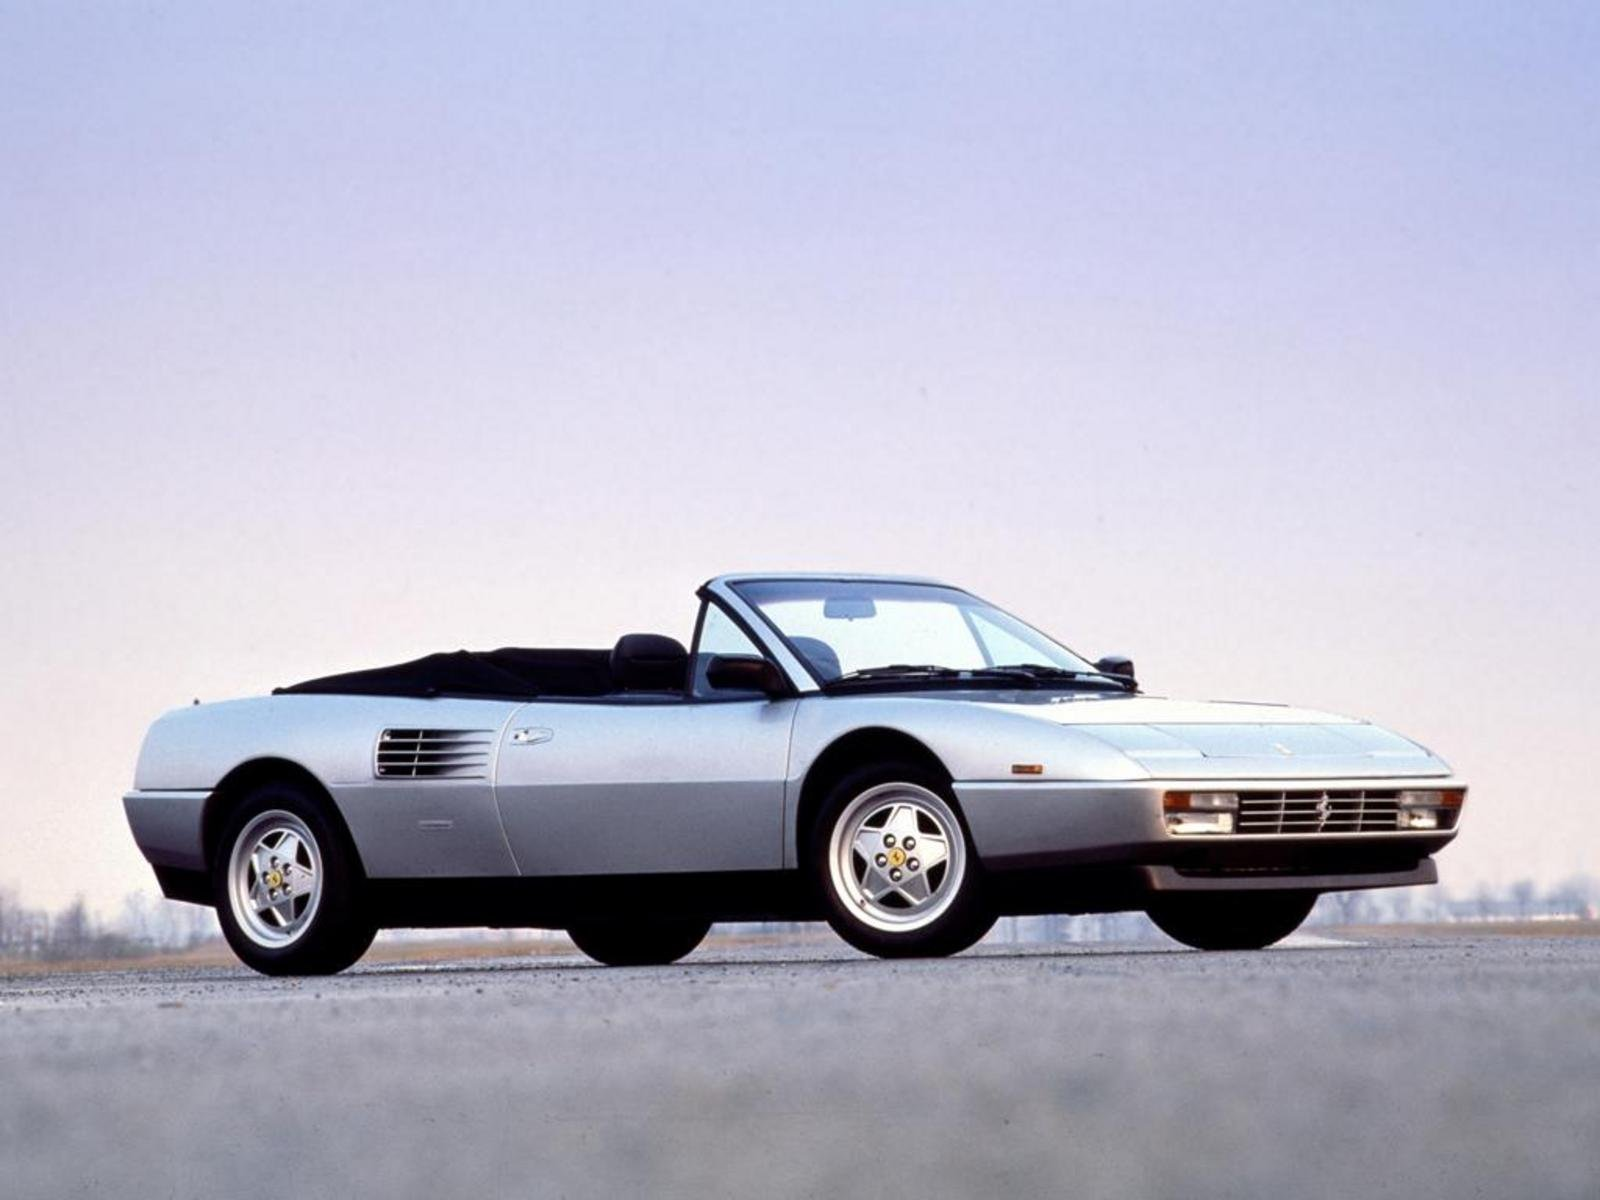 1989 1993 ferrari mondial t cabriolet review top speed. Black Bedroom Furniture Sets. Home Design Ideas